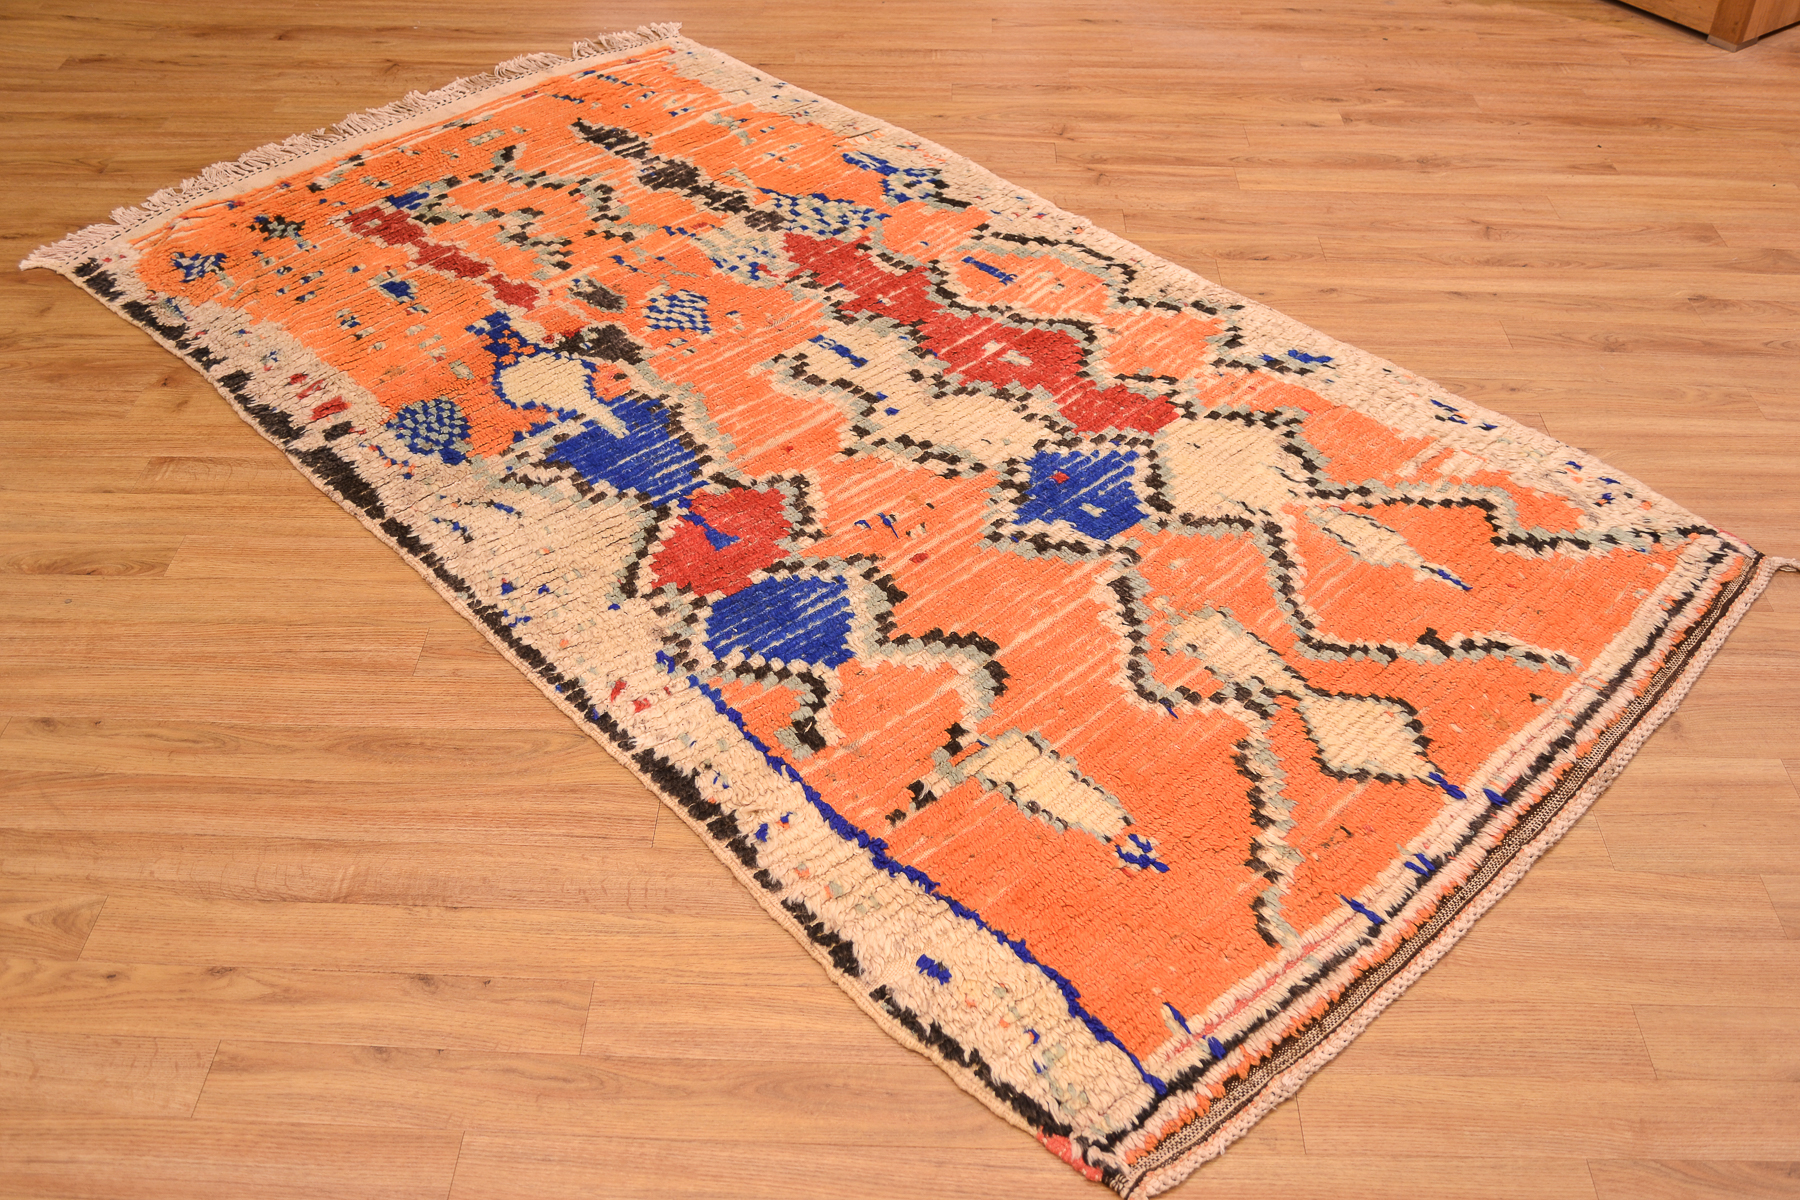 Funky Unique Vintage Azilal Rug 2 17x1 18m The Oriental